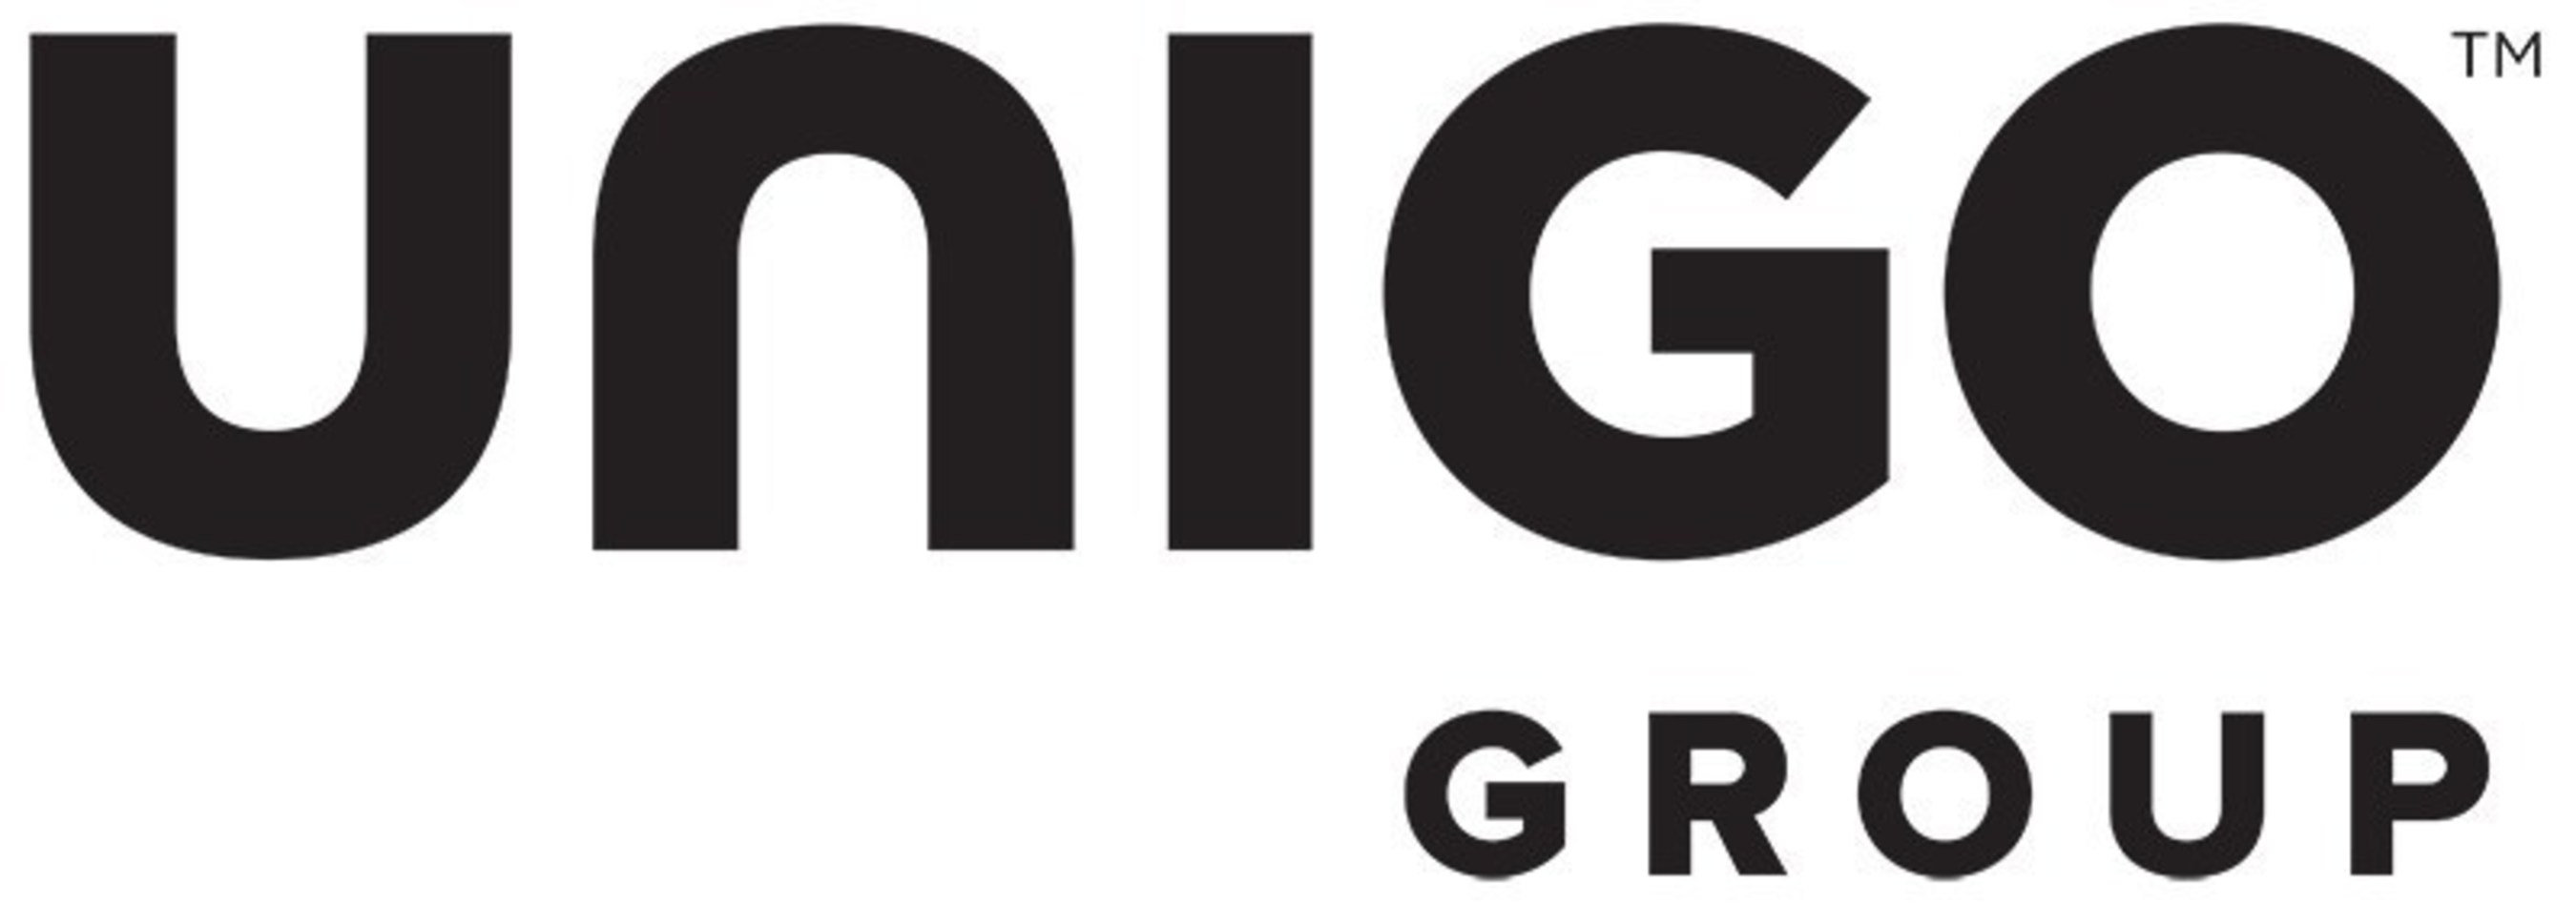 Unigo Group improves students' decision-making and outcomes by providing the most personalized and accurate  ...